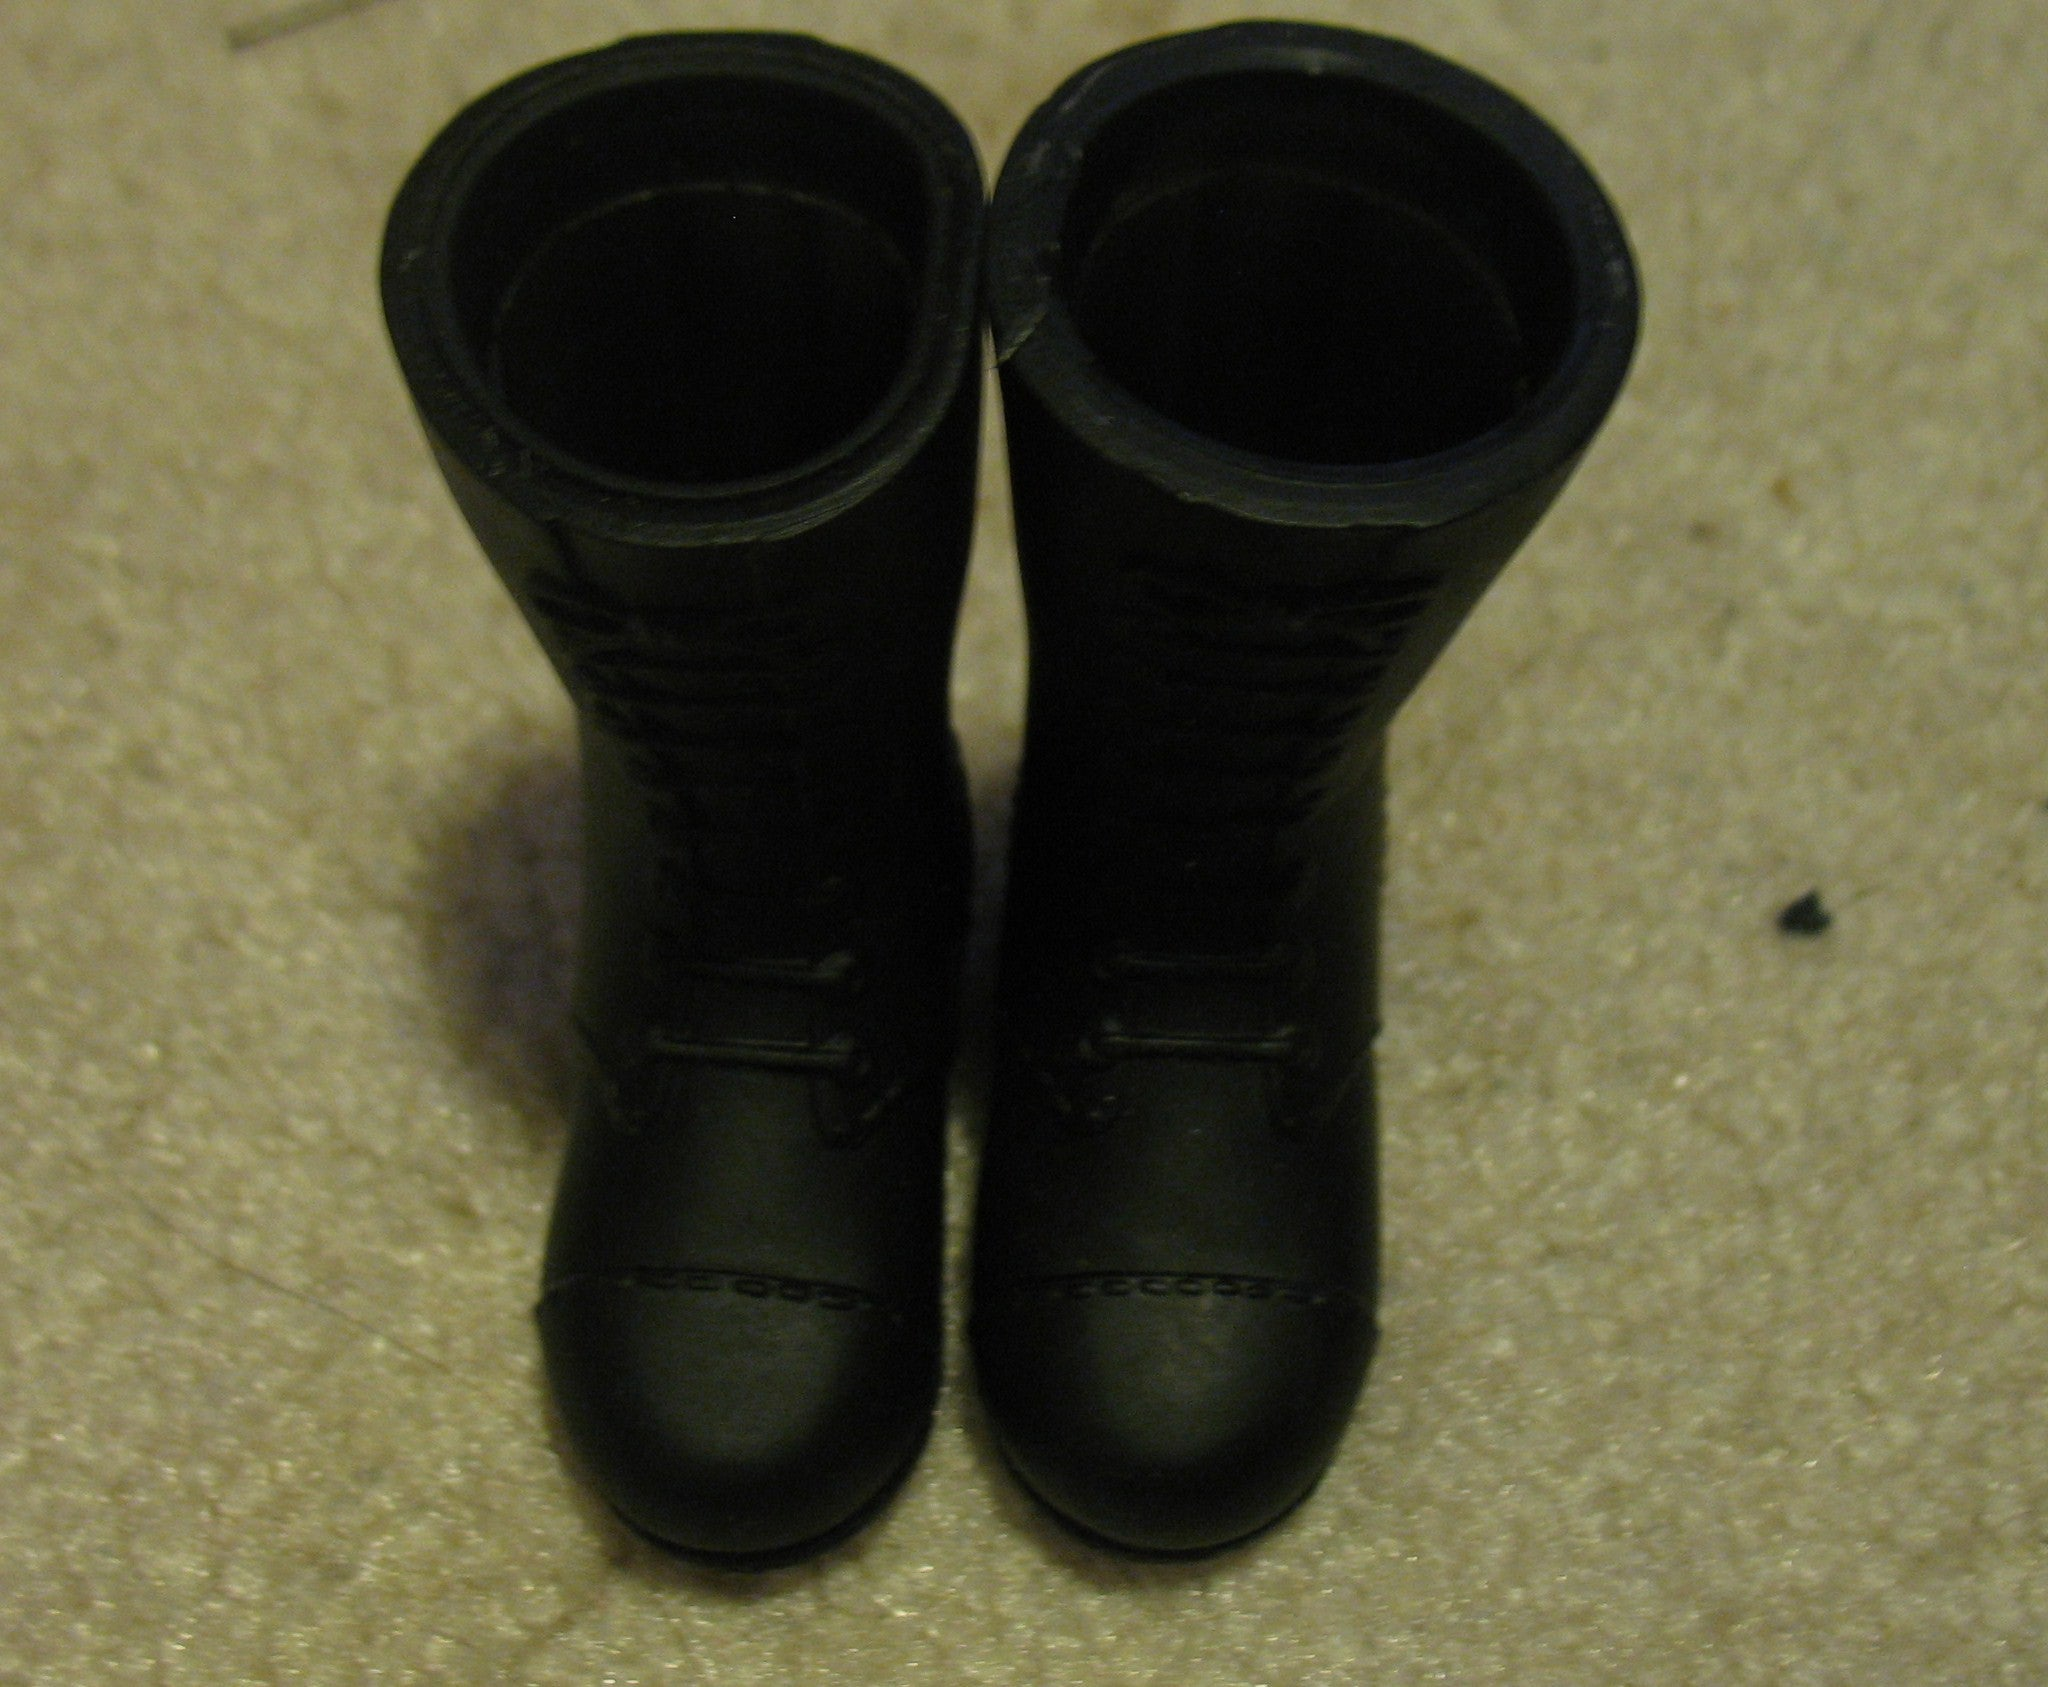 F014GI JOE Hasbro 30th Annivesary Rubber Boots various colors available, brand new unused!